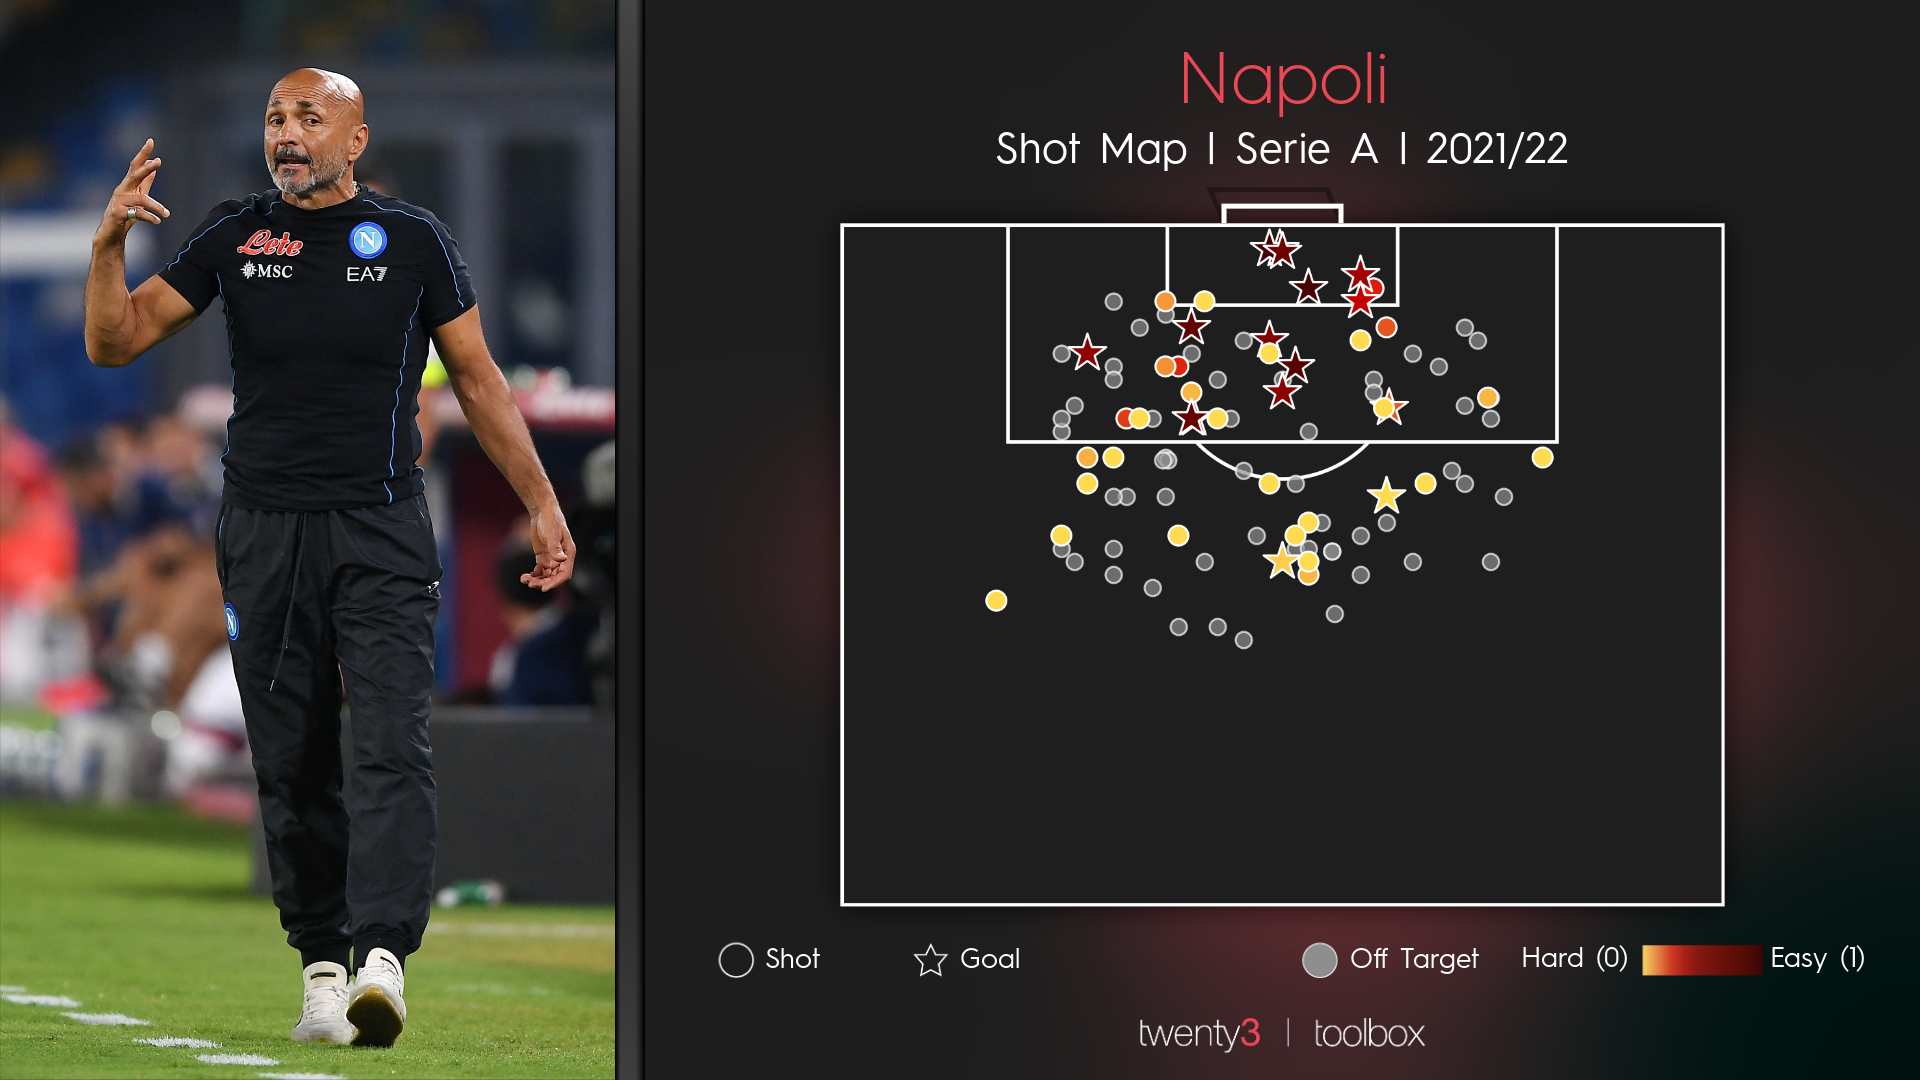 Napoli's shot map for the 2021/22 campaign.